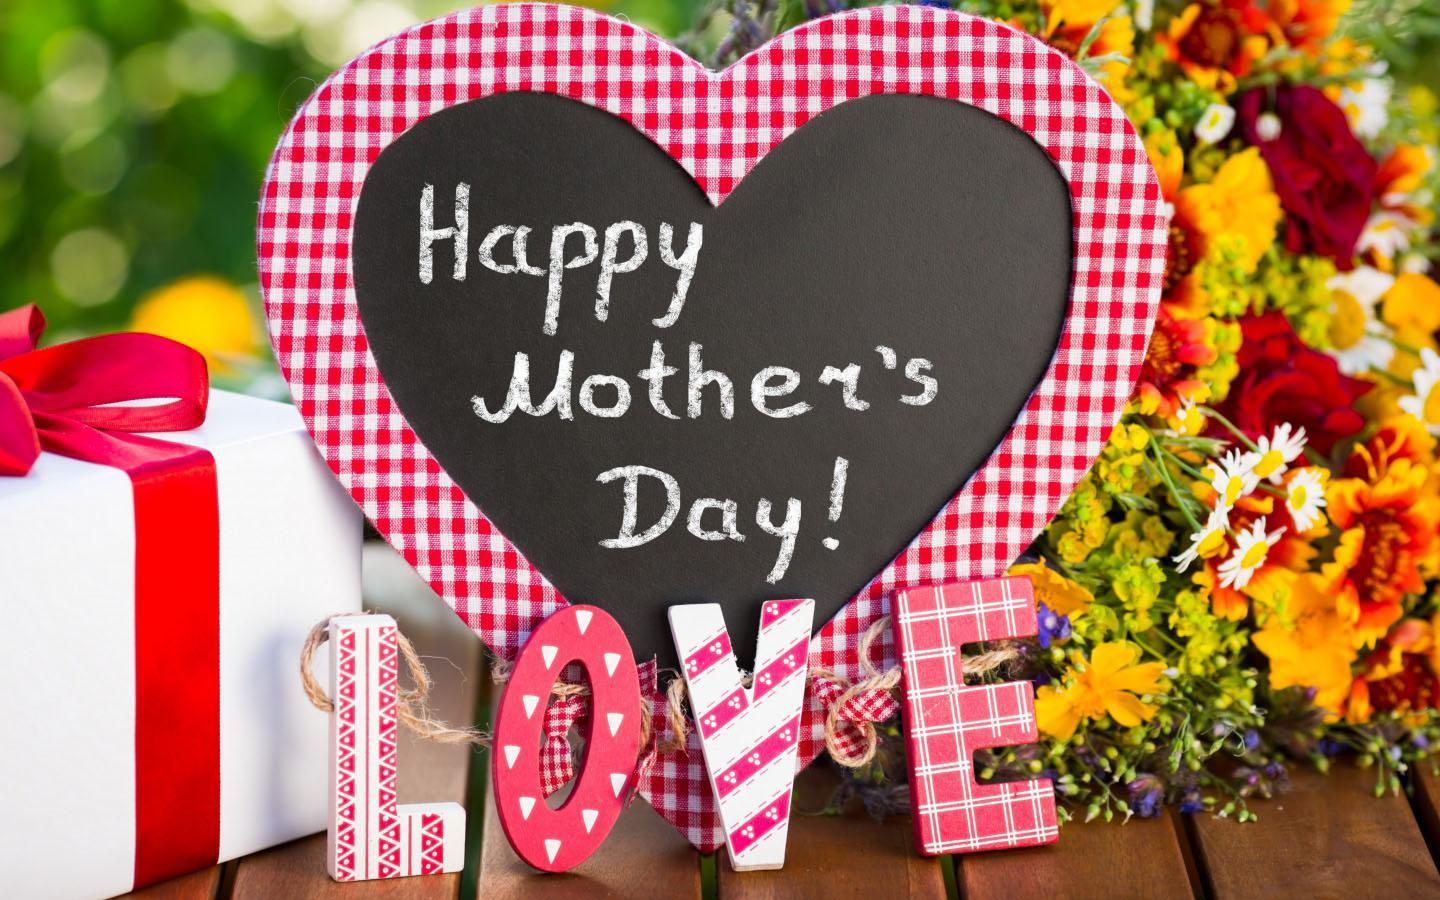 Mothers Day Wishes Images Status for WhatsApp 2018 Steemit 1440x900